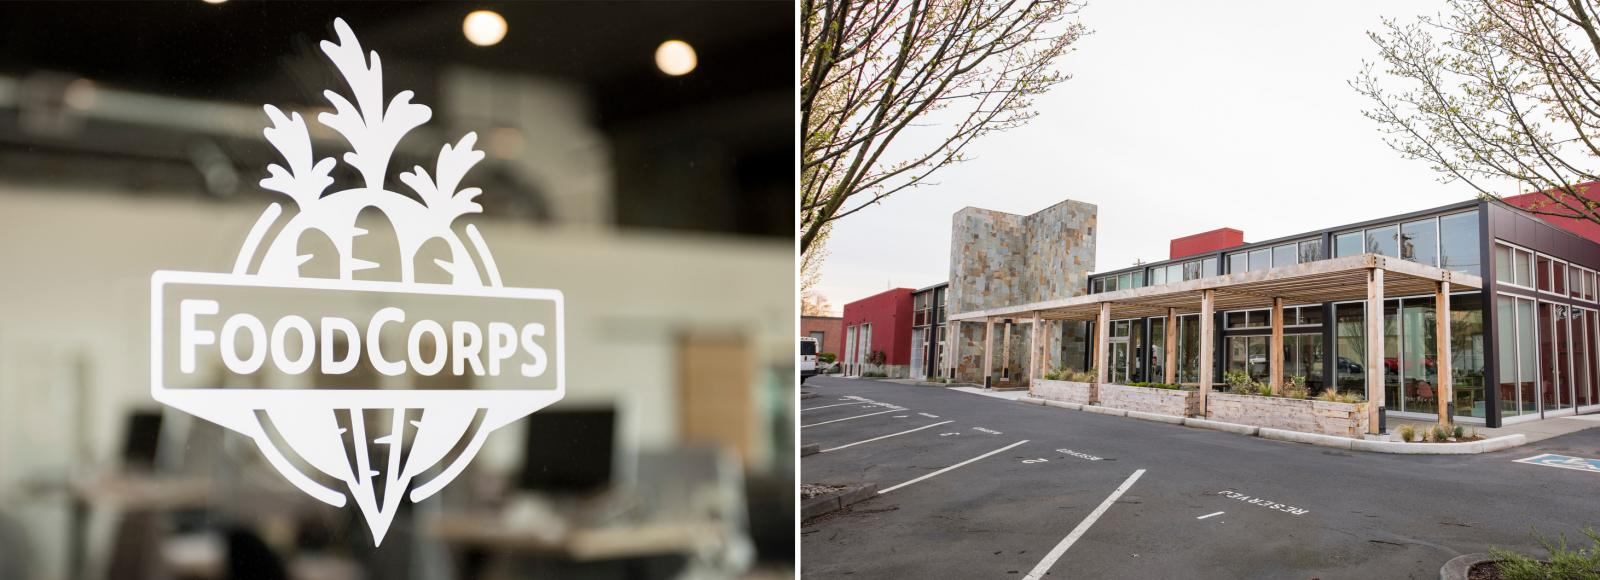 Food Corps logo on a window in the left photo; an office campus in the right photo